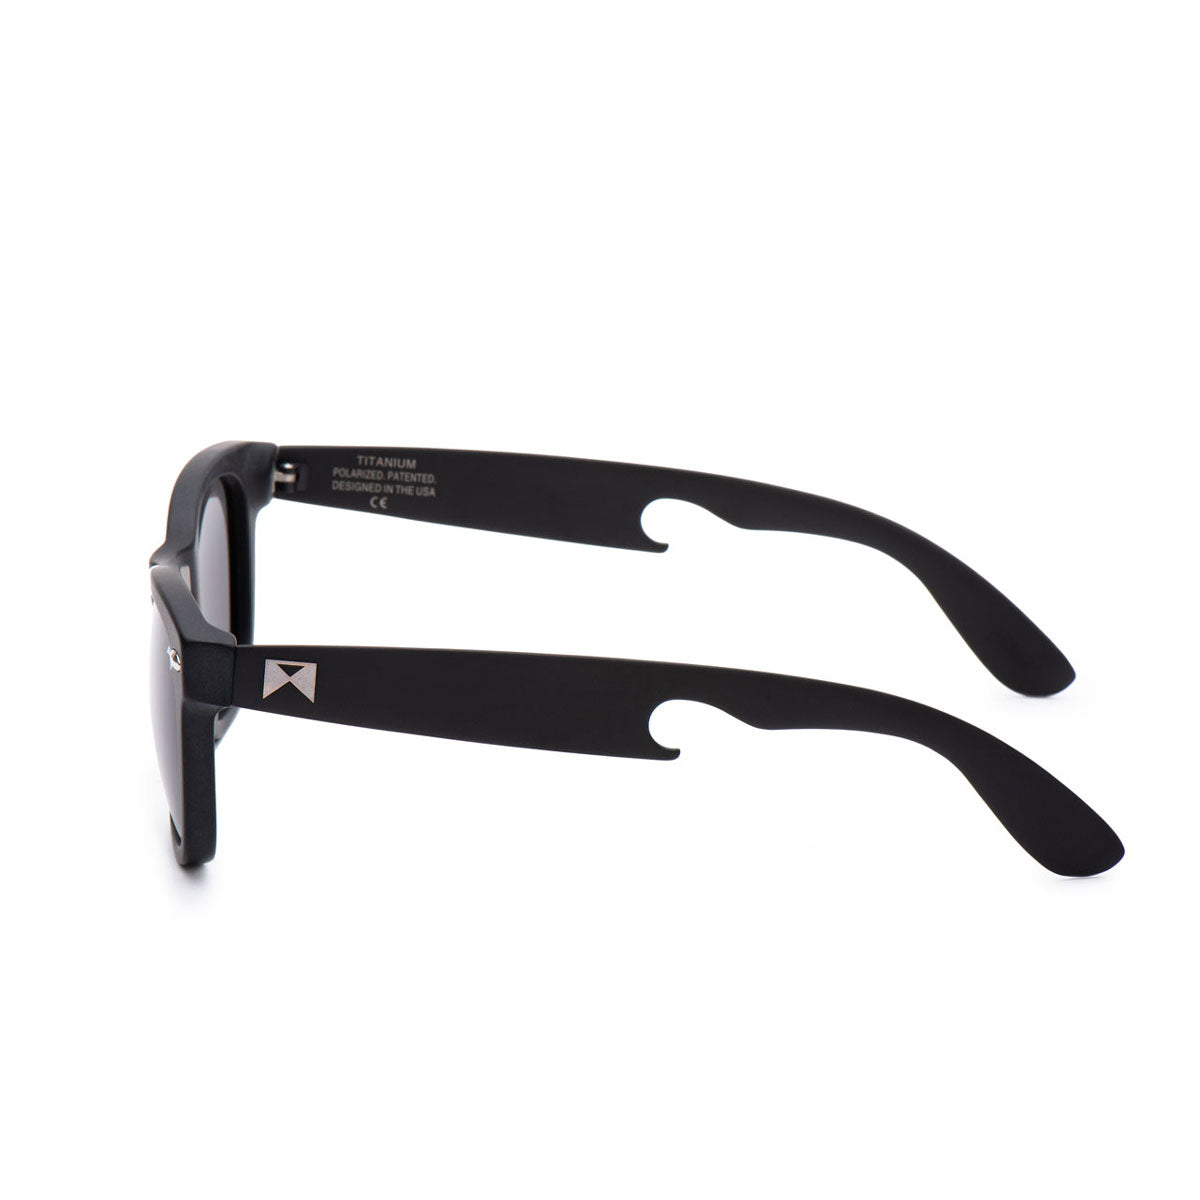 77647013c42 Titanium Sunglasses by William Painter